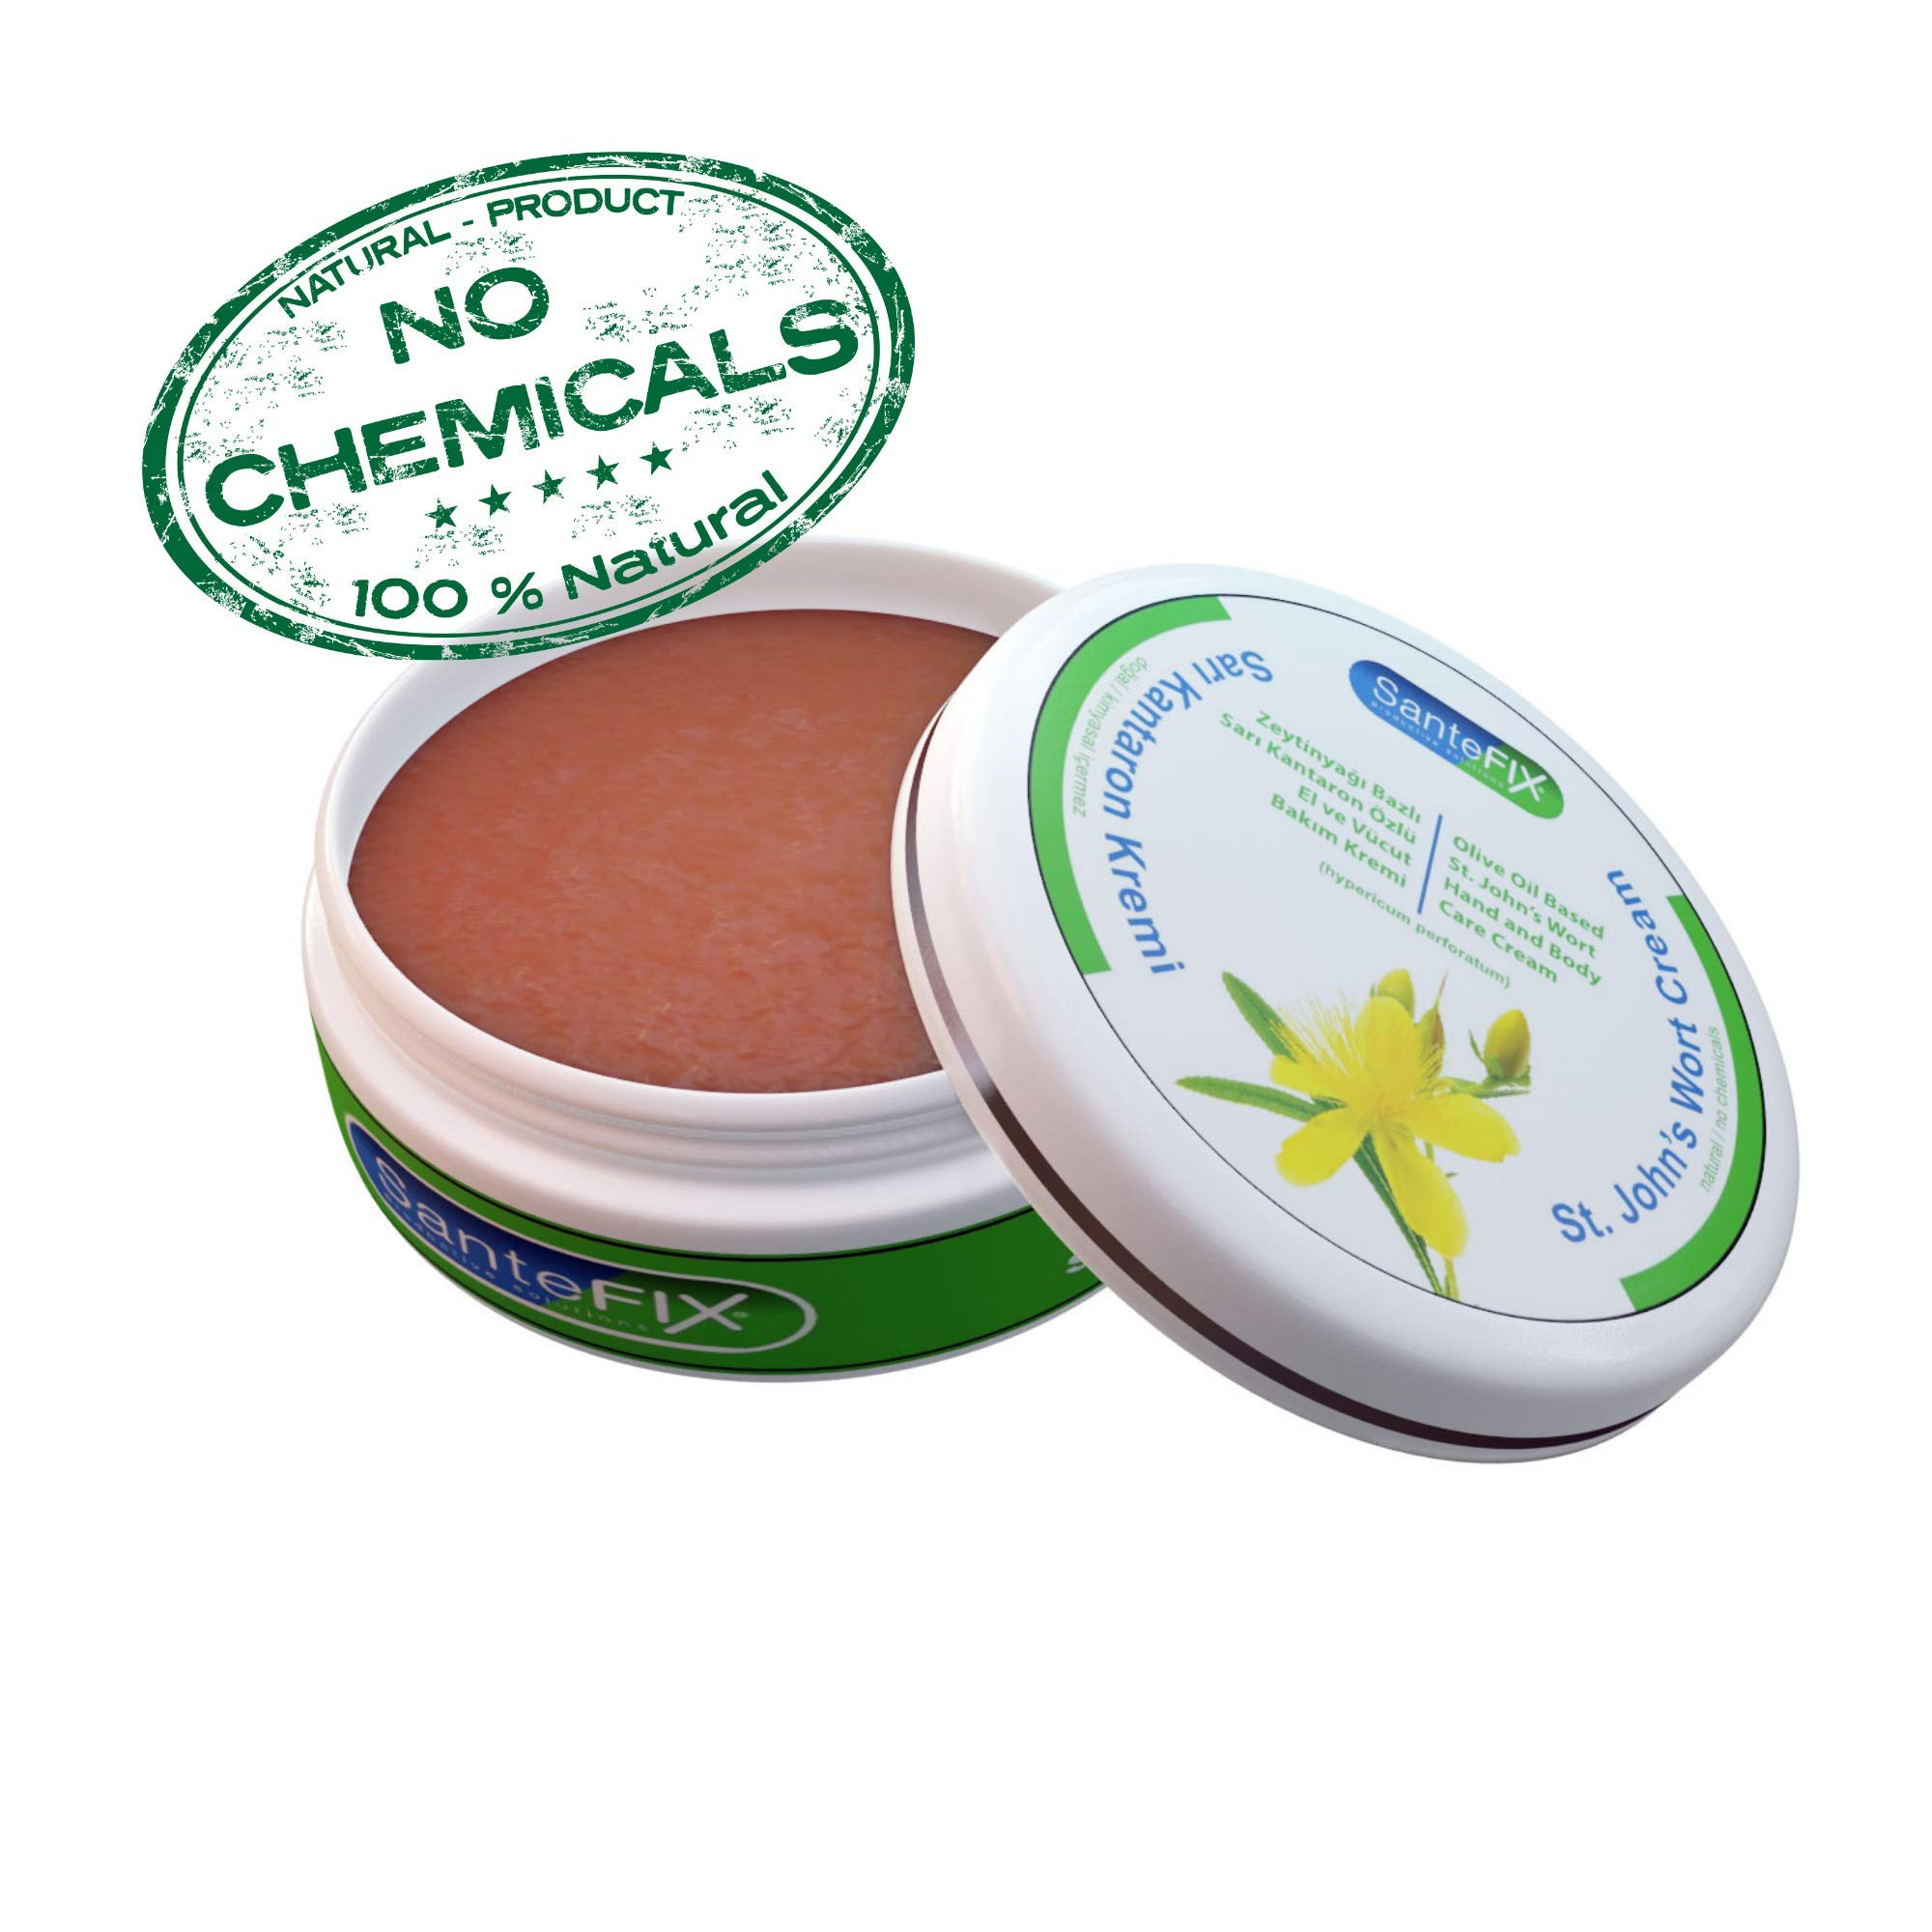 SanteFIX St John's Wort -No Chemicals- Skin Cream with Olive Oil for Acne & Hemorrhoid & Scar Removal & Wound Care & Stretch Mark & Bed Sore by Fixx